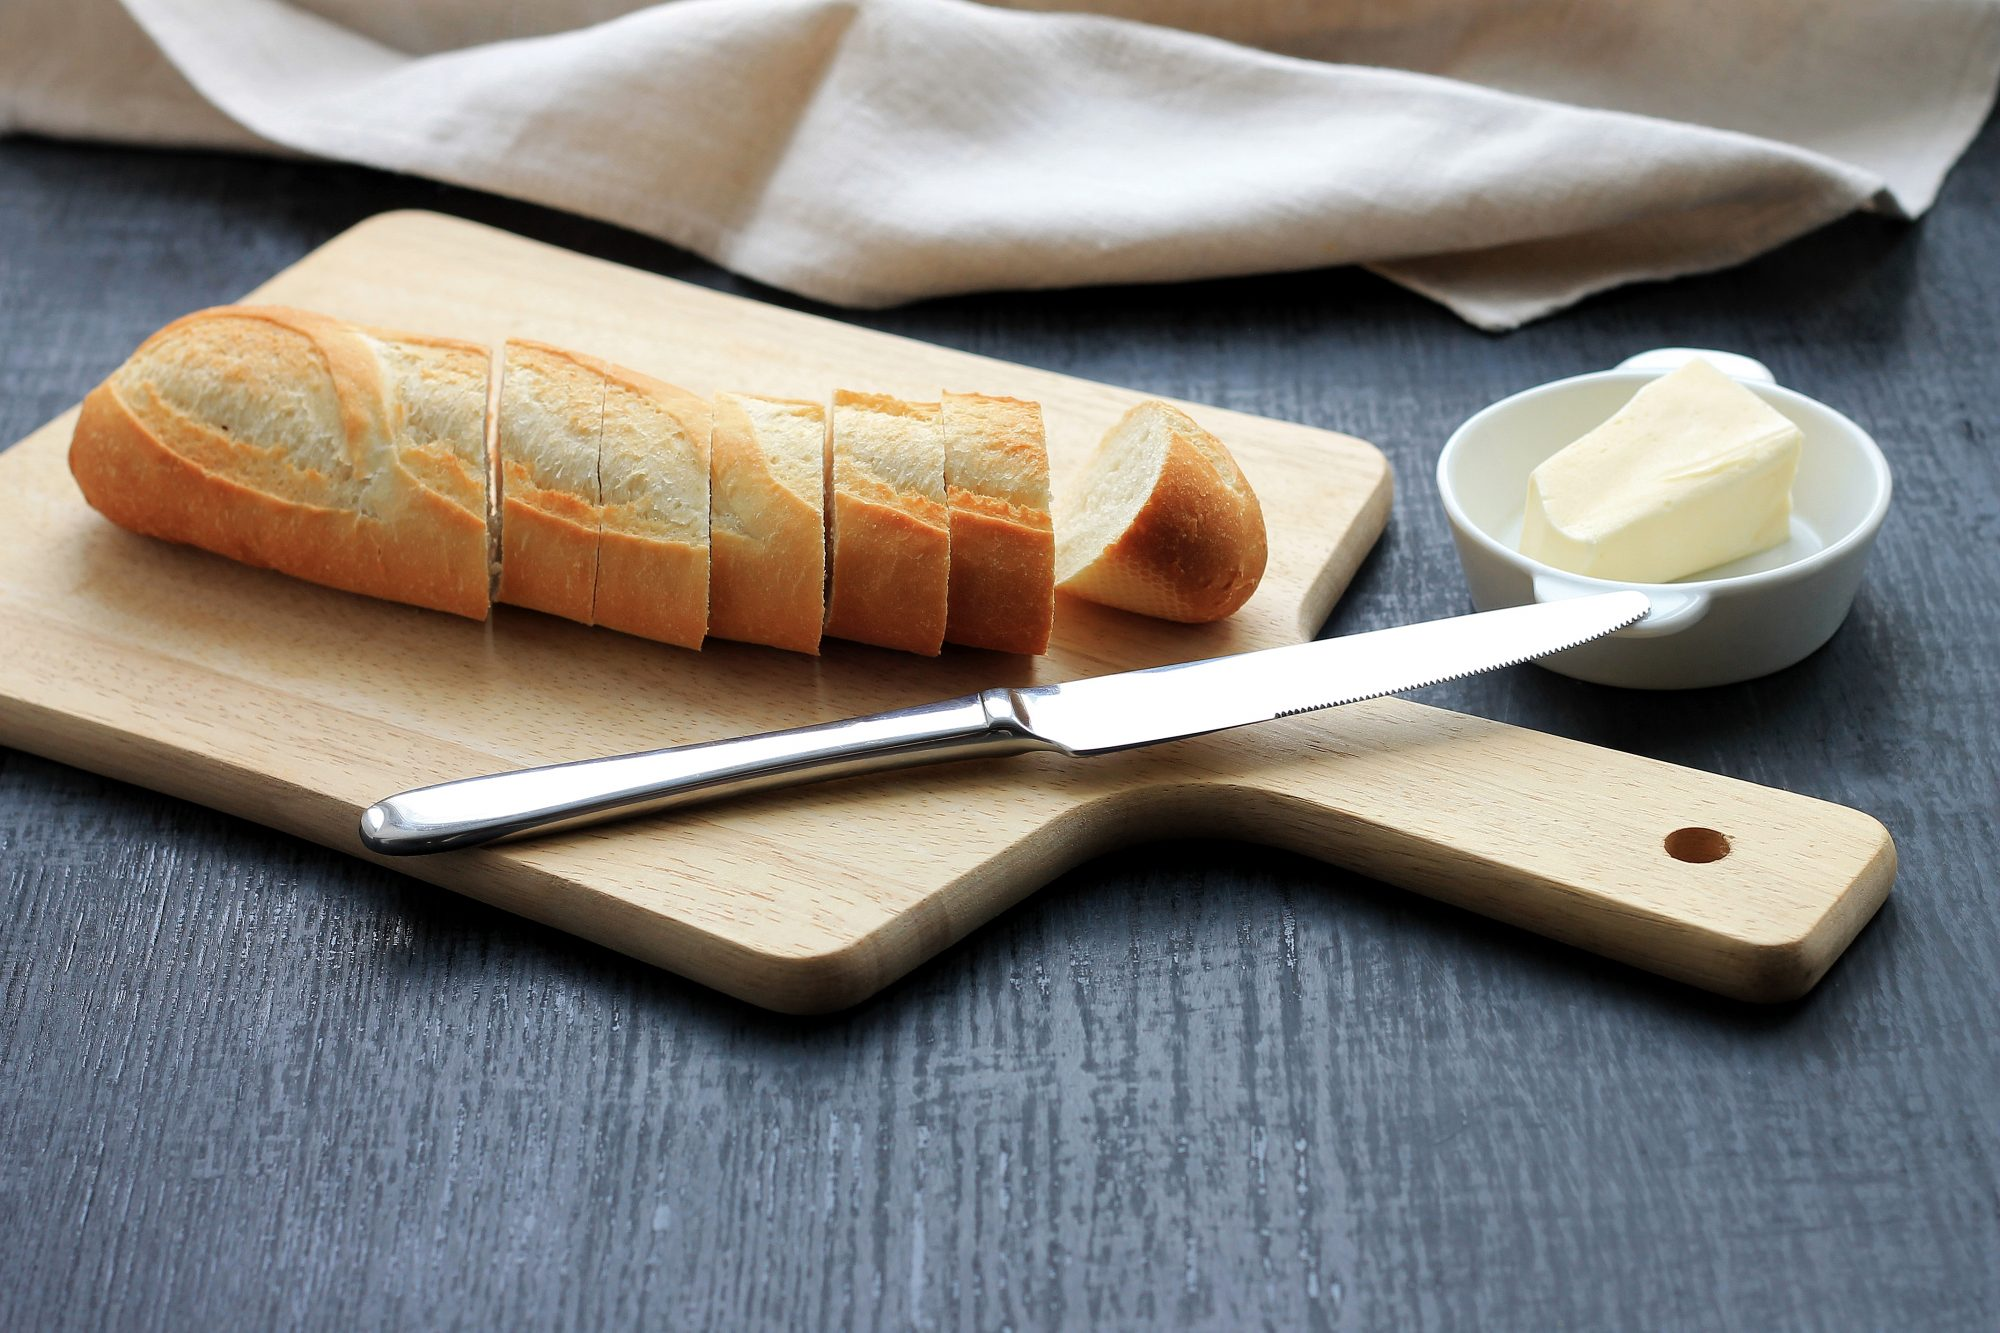 Bread (sliced baguette) on cutting board with butter on plate on dark background.